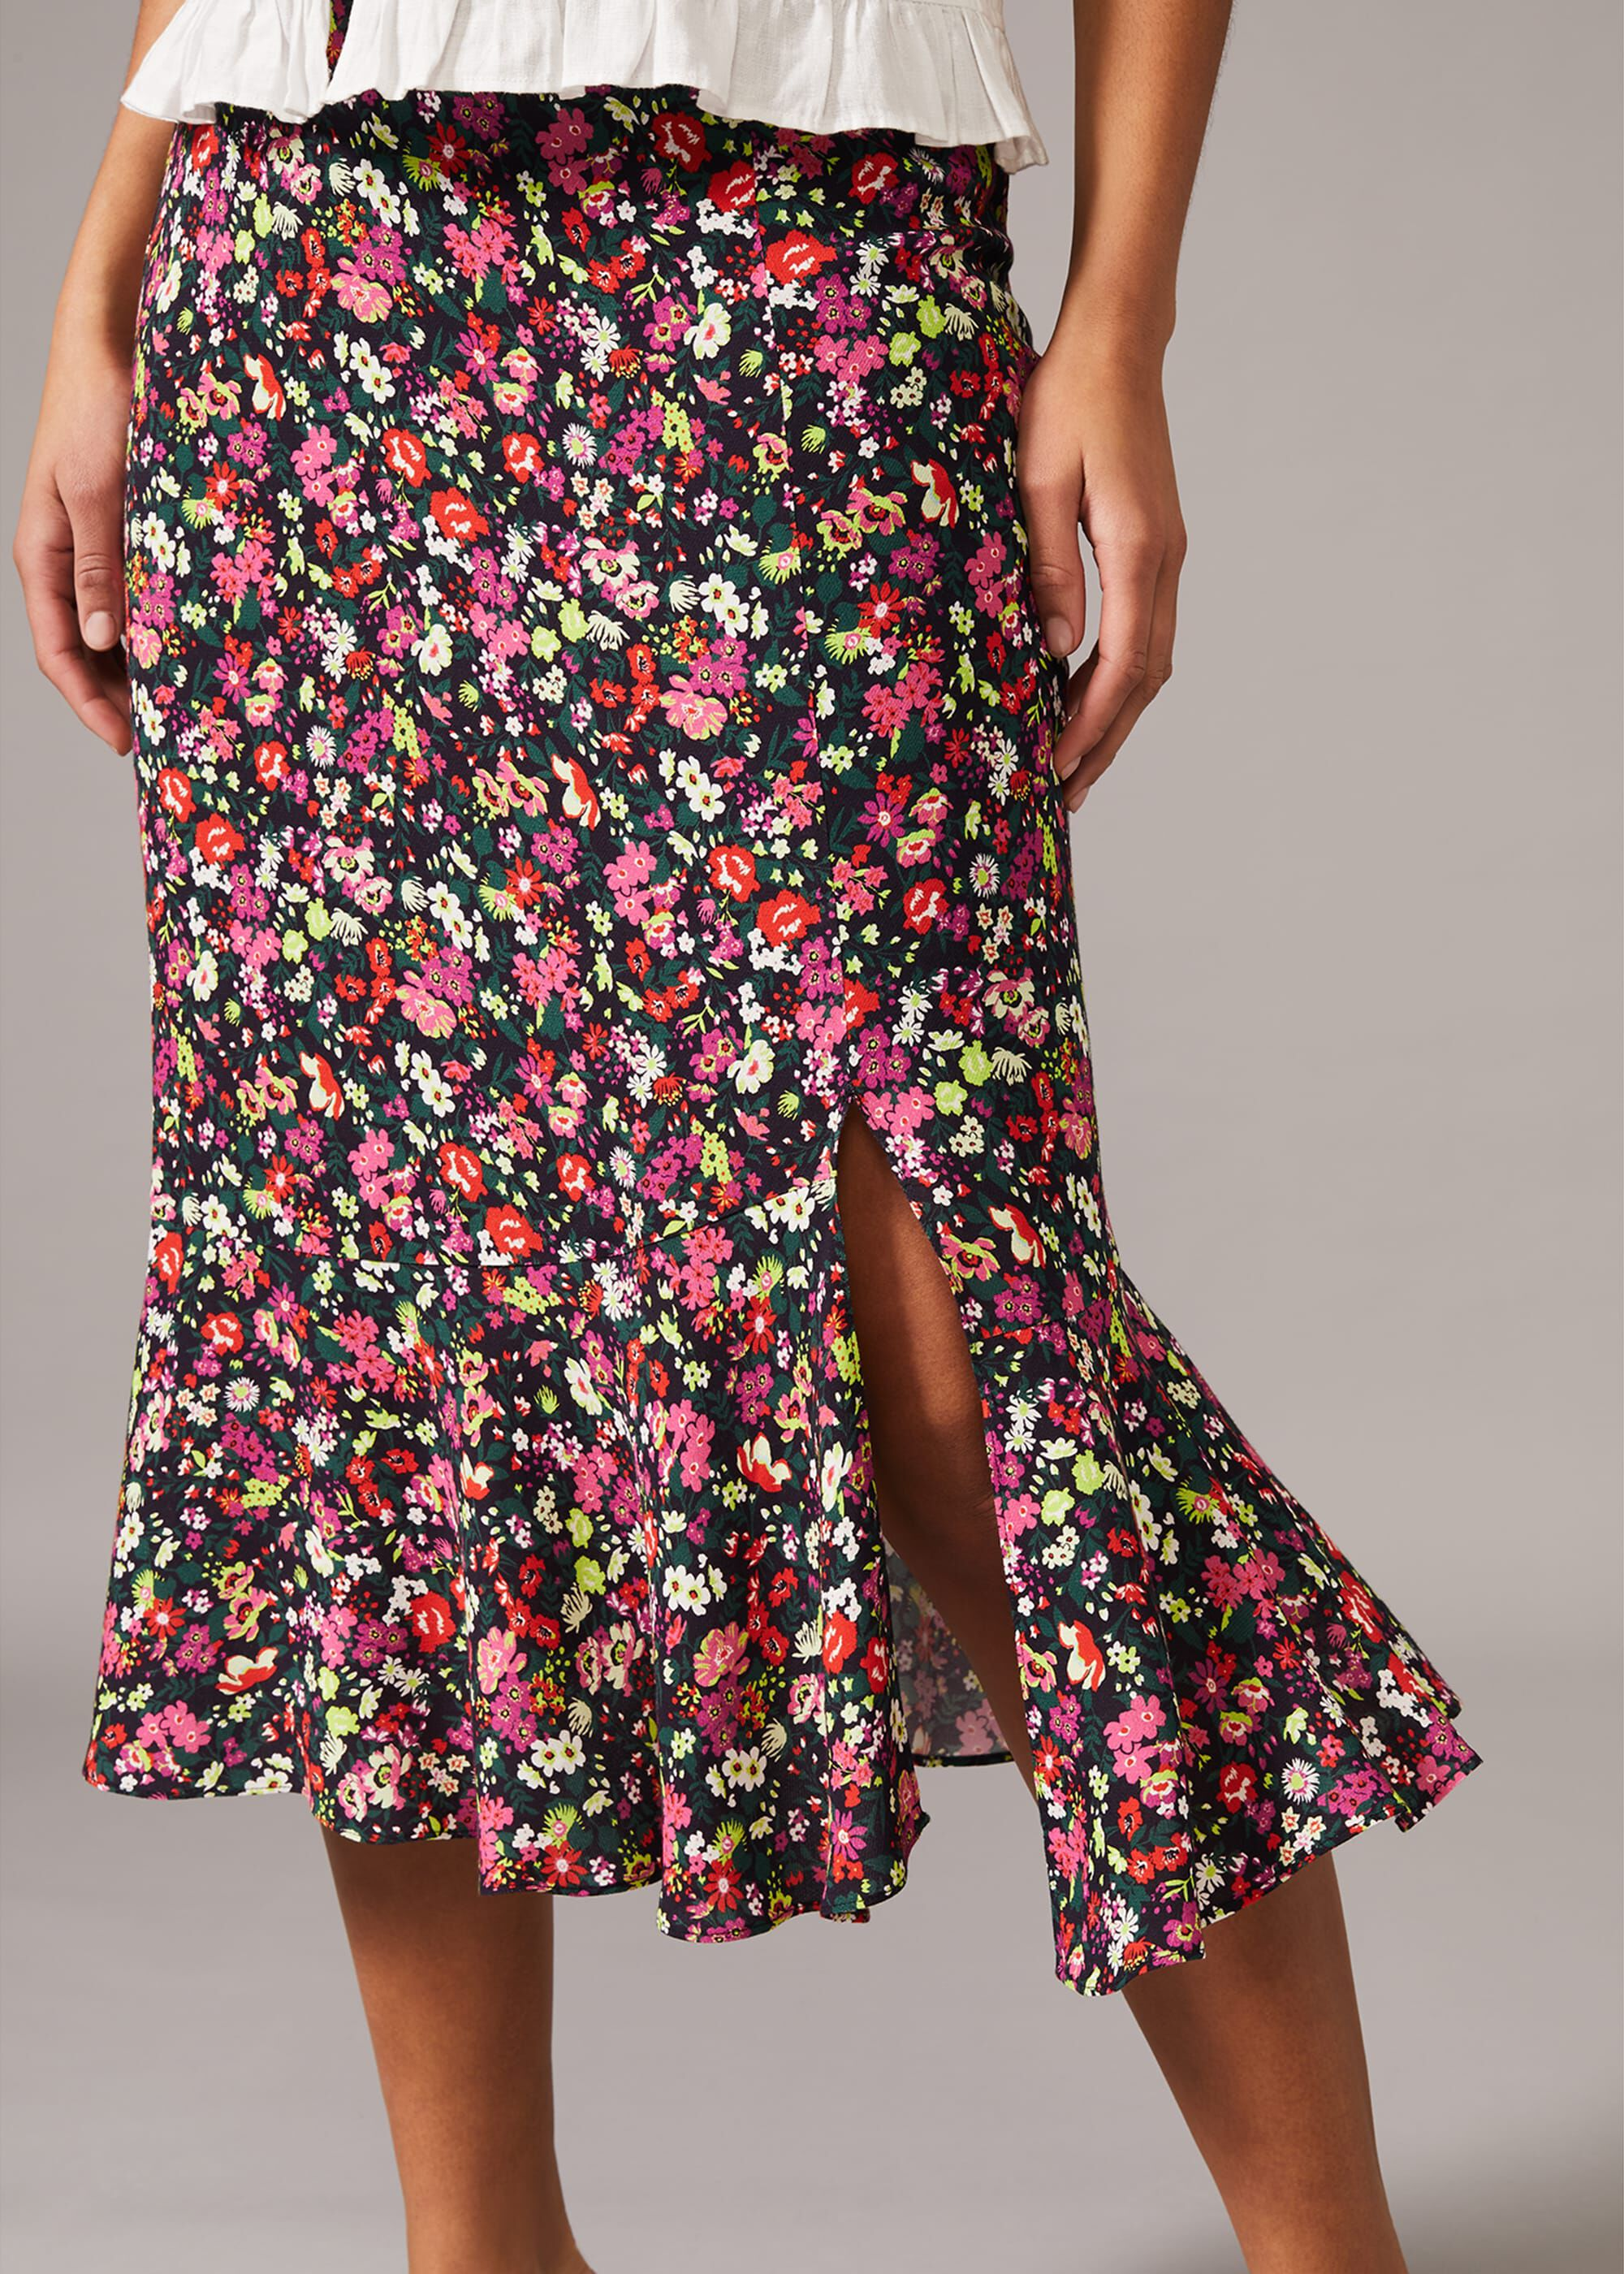 Phase Eight Libertine Floral Midi Skirt, Multicoloured, Midi Length Skirt